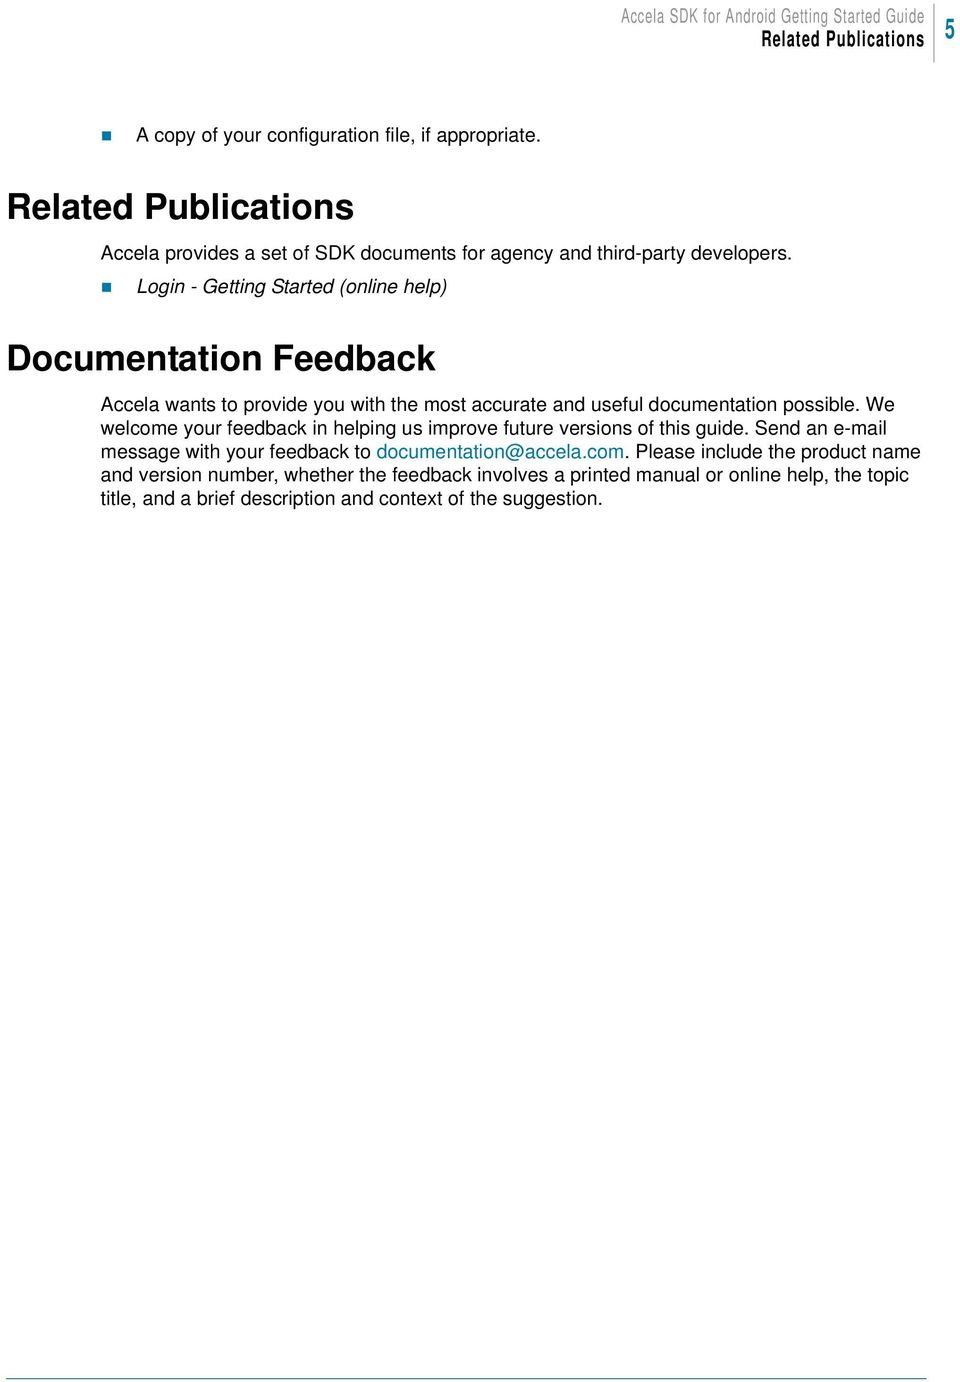 Login - Getting Started (online help) Documentation Feedback Accela wants to provide you with the most accurate and useful documentation possible.